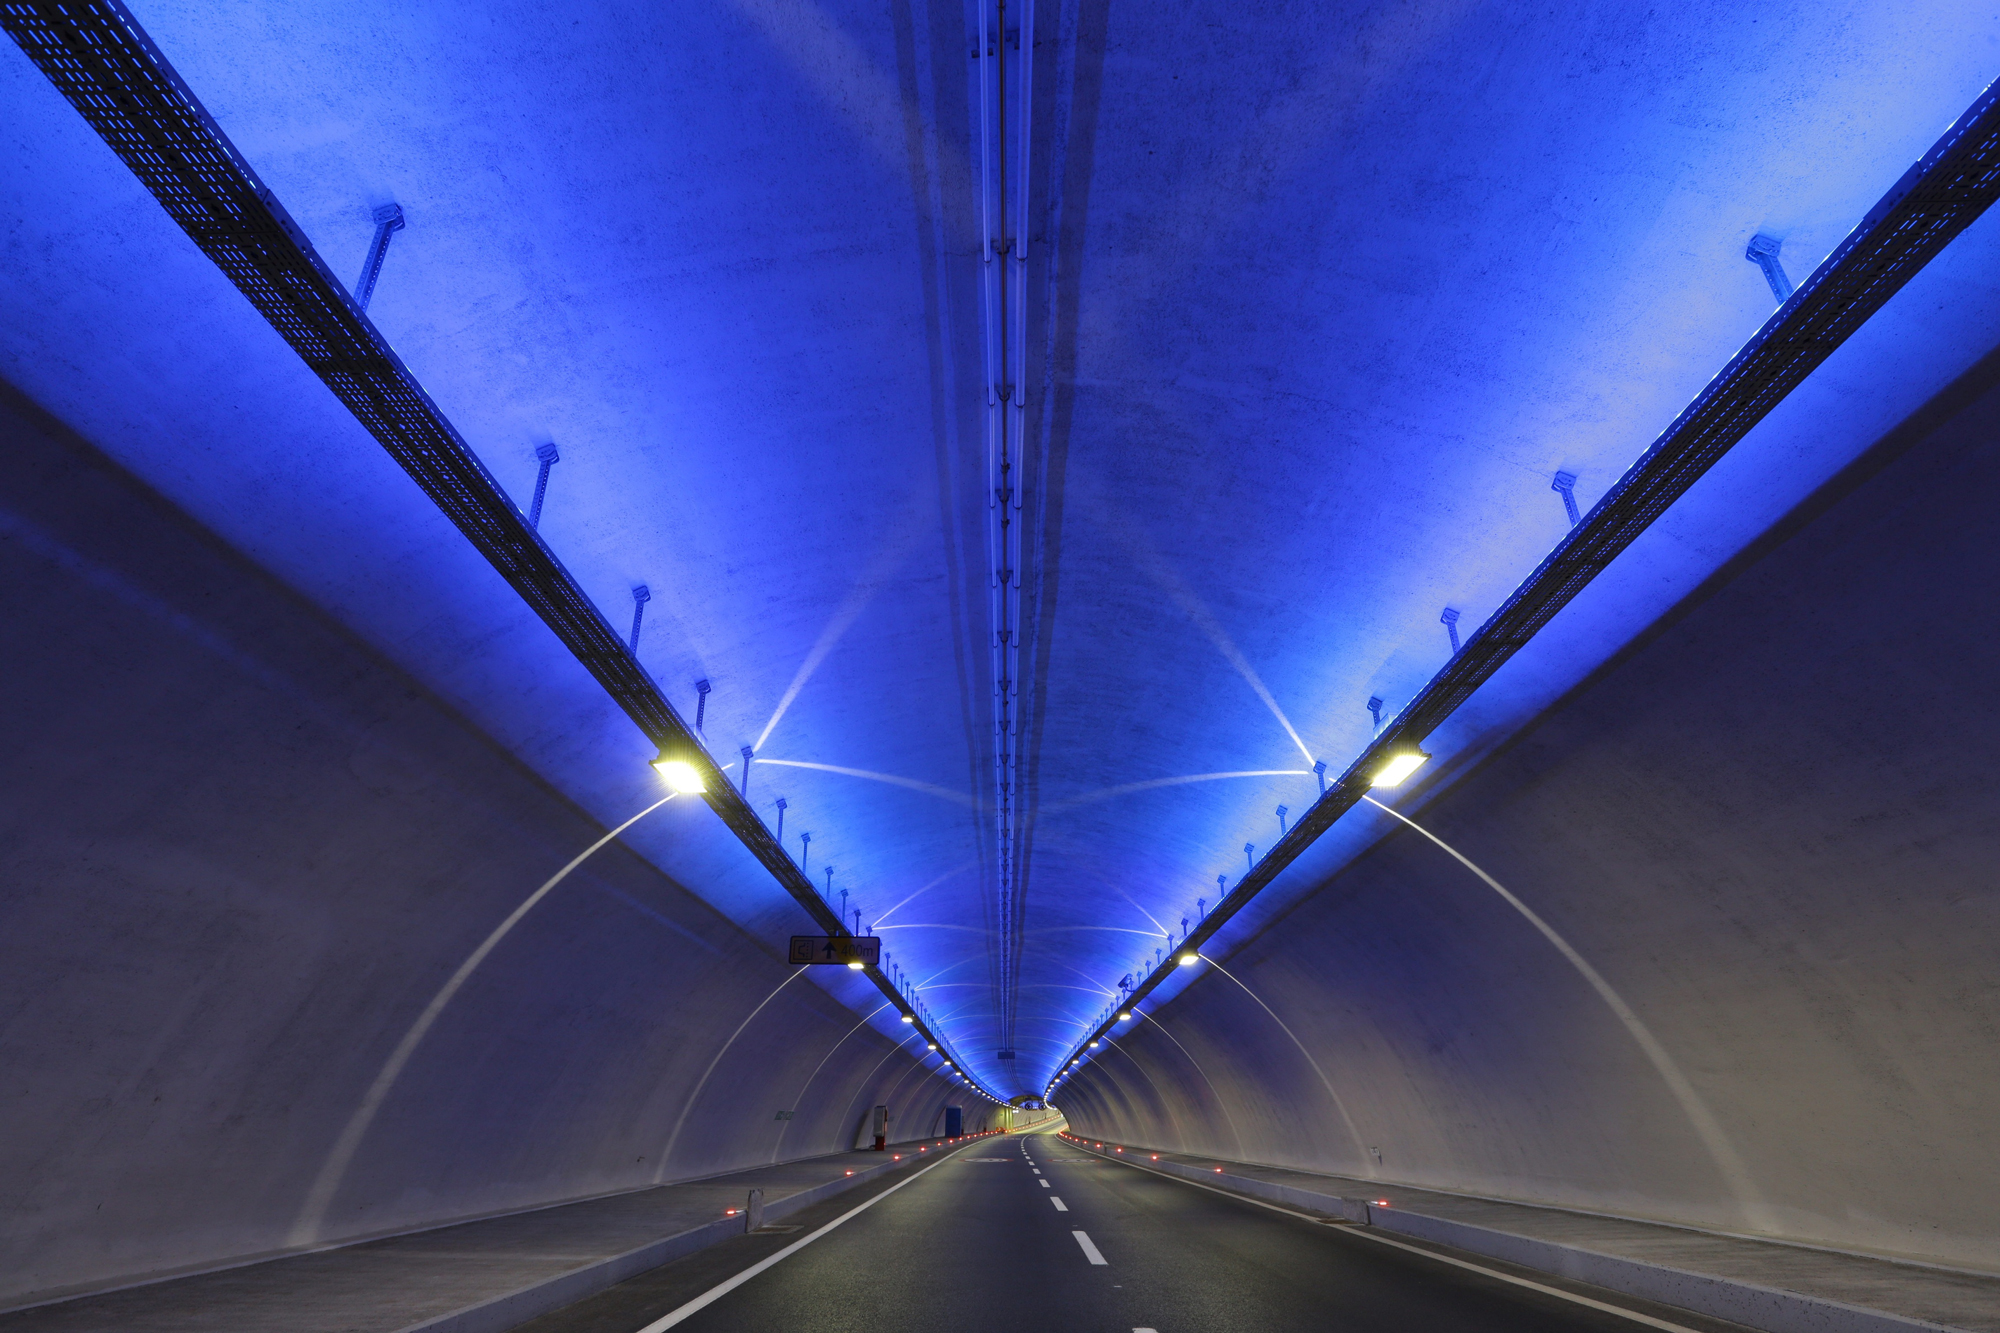 The Eurasia Tunnel wins the IES Illumination Award of Merit